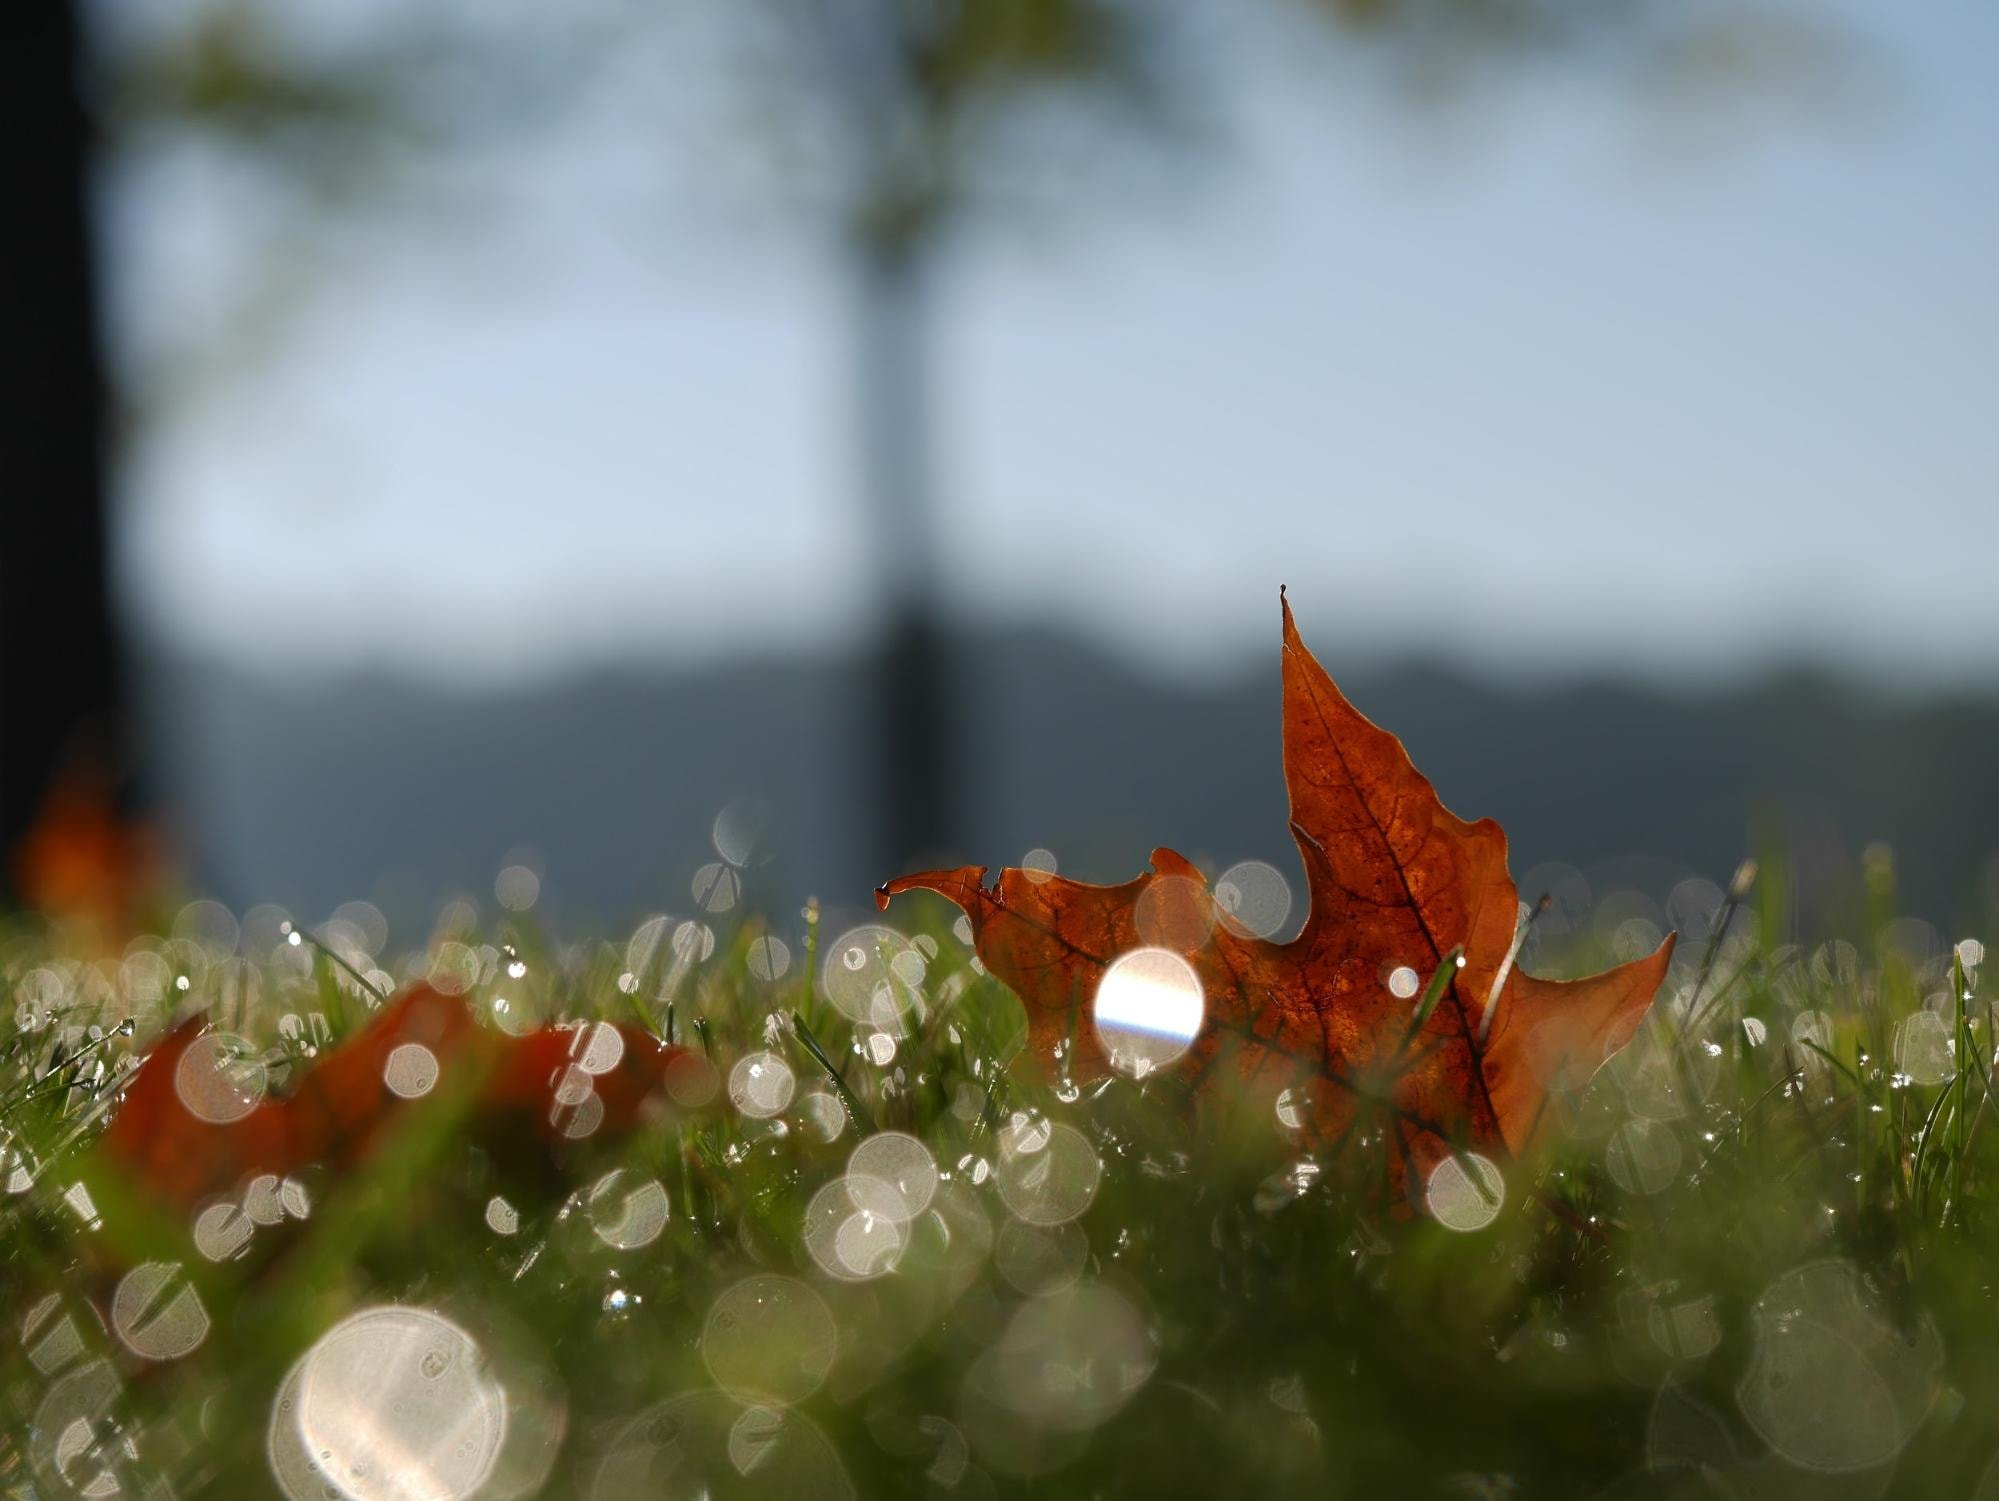 Leaf bokeh effect on grass foreground